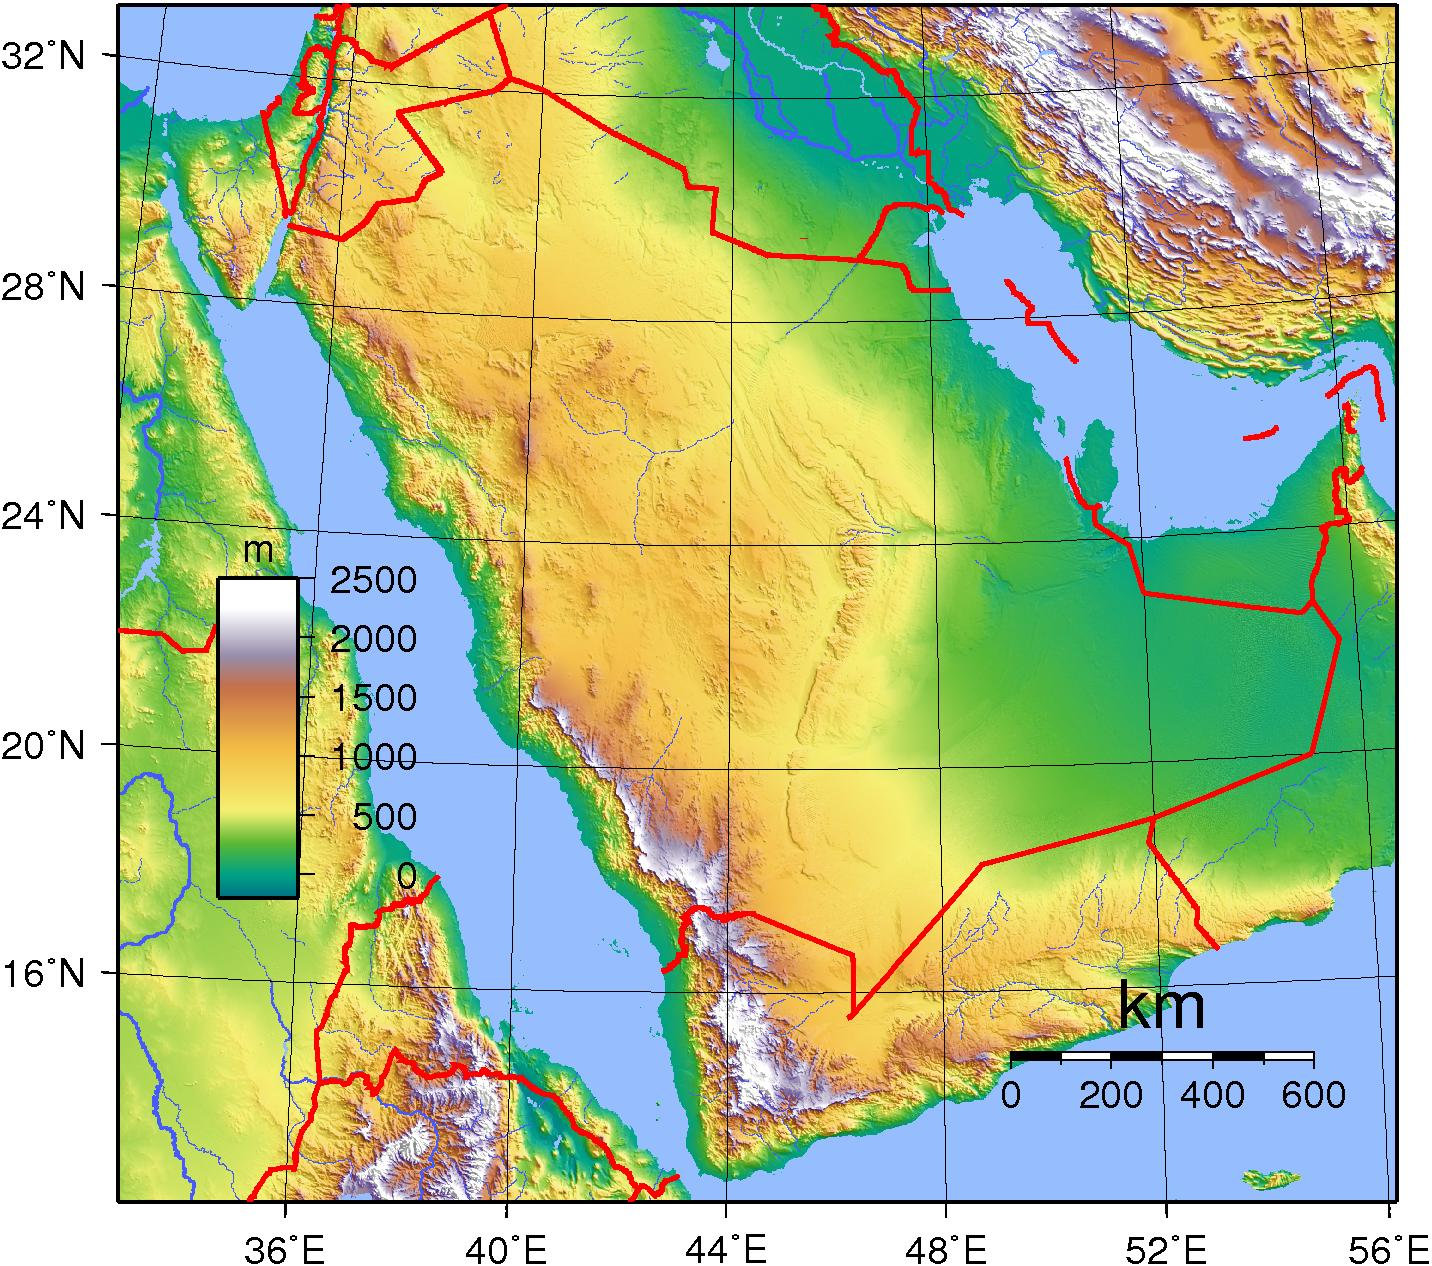 Saudi Arabia Elevation Map Map Of Saudi Arabia Elevation Western